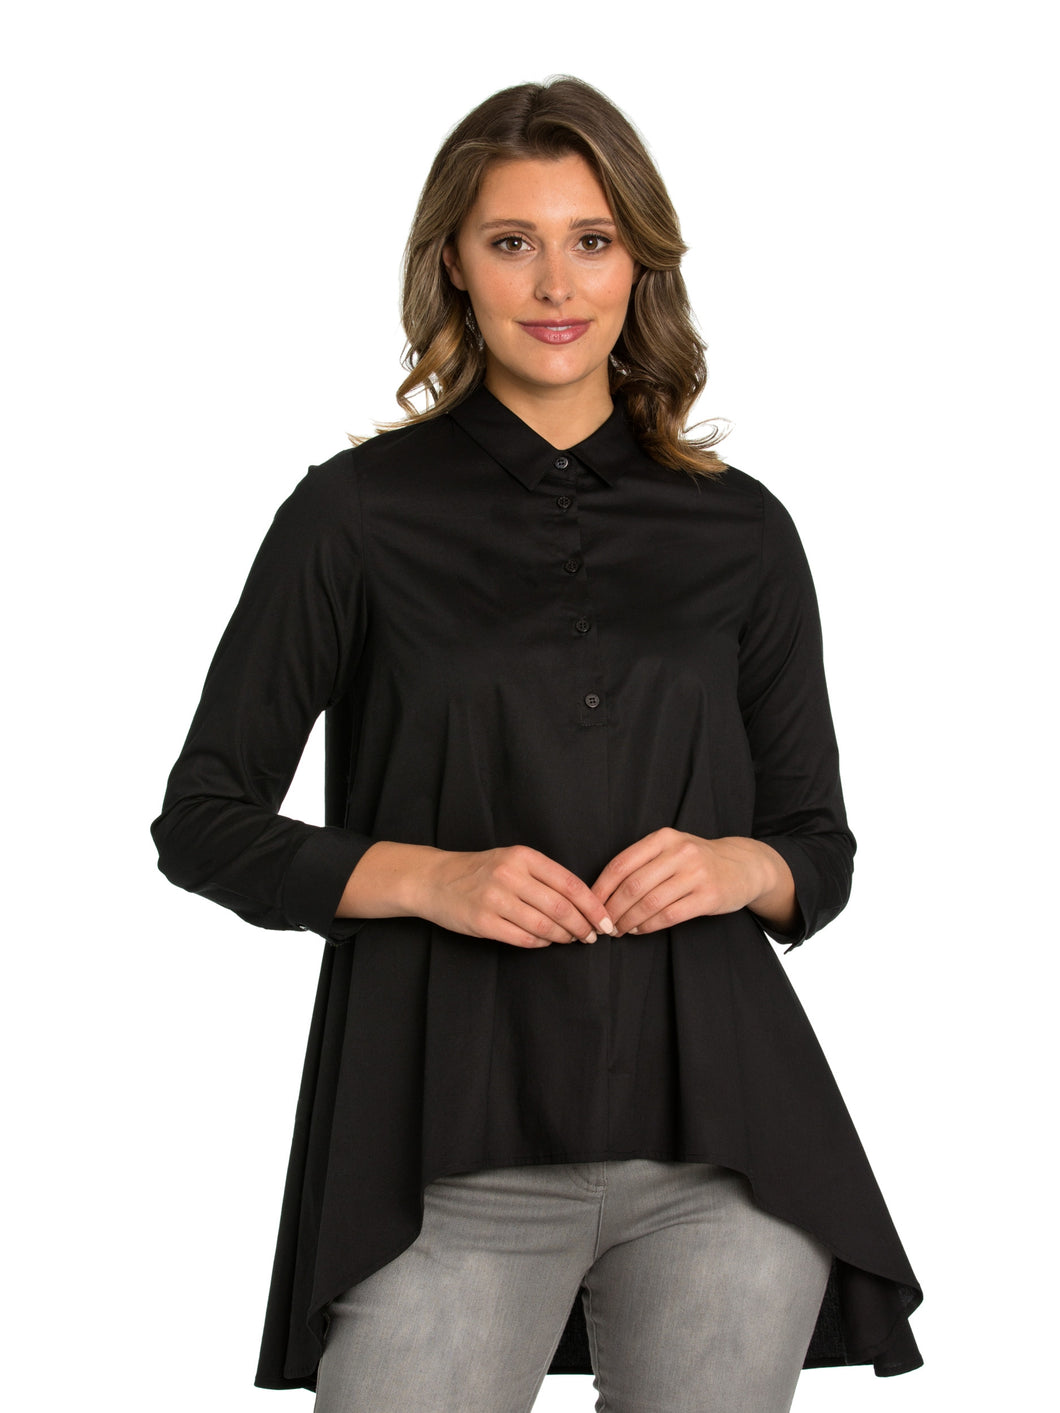 Marco Polo Black Modern Shirt